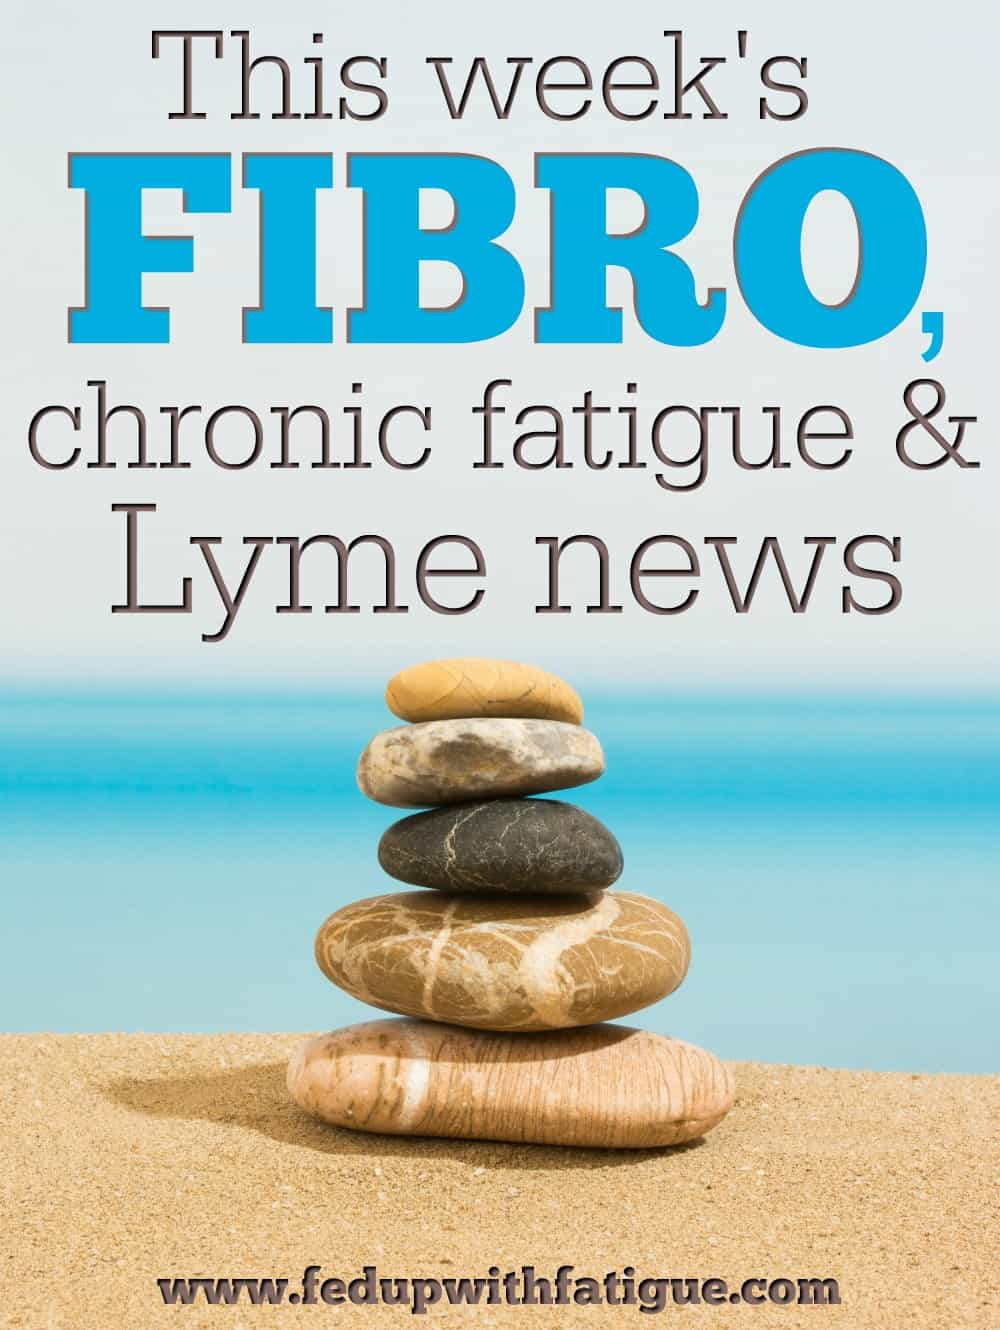 August 11, 2017 fibromyalgia, chronic fatigue and Lyme news | Fed Up with Fatigue